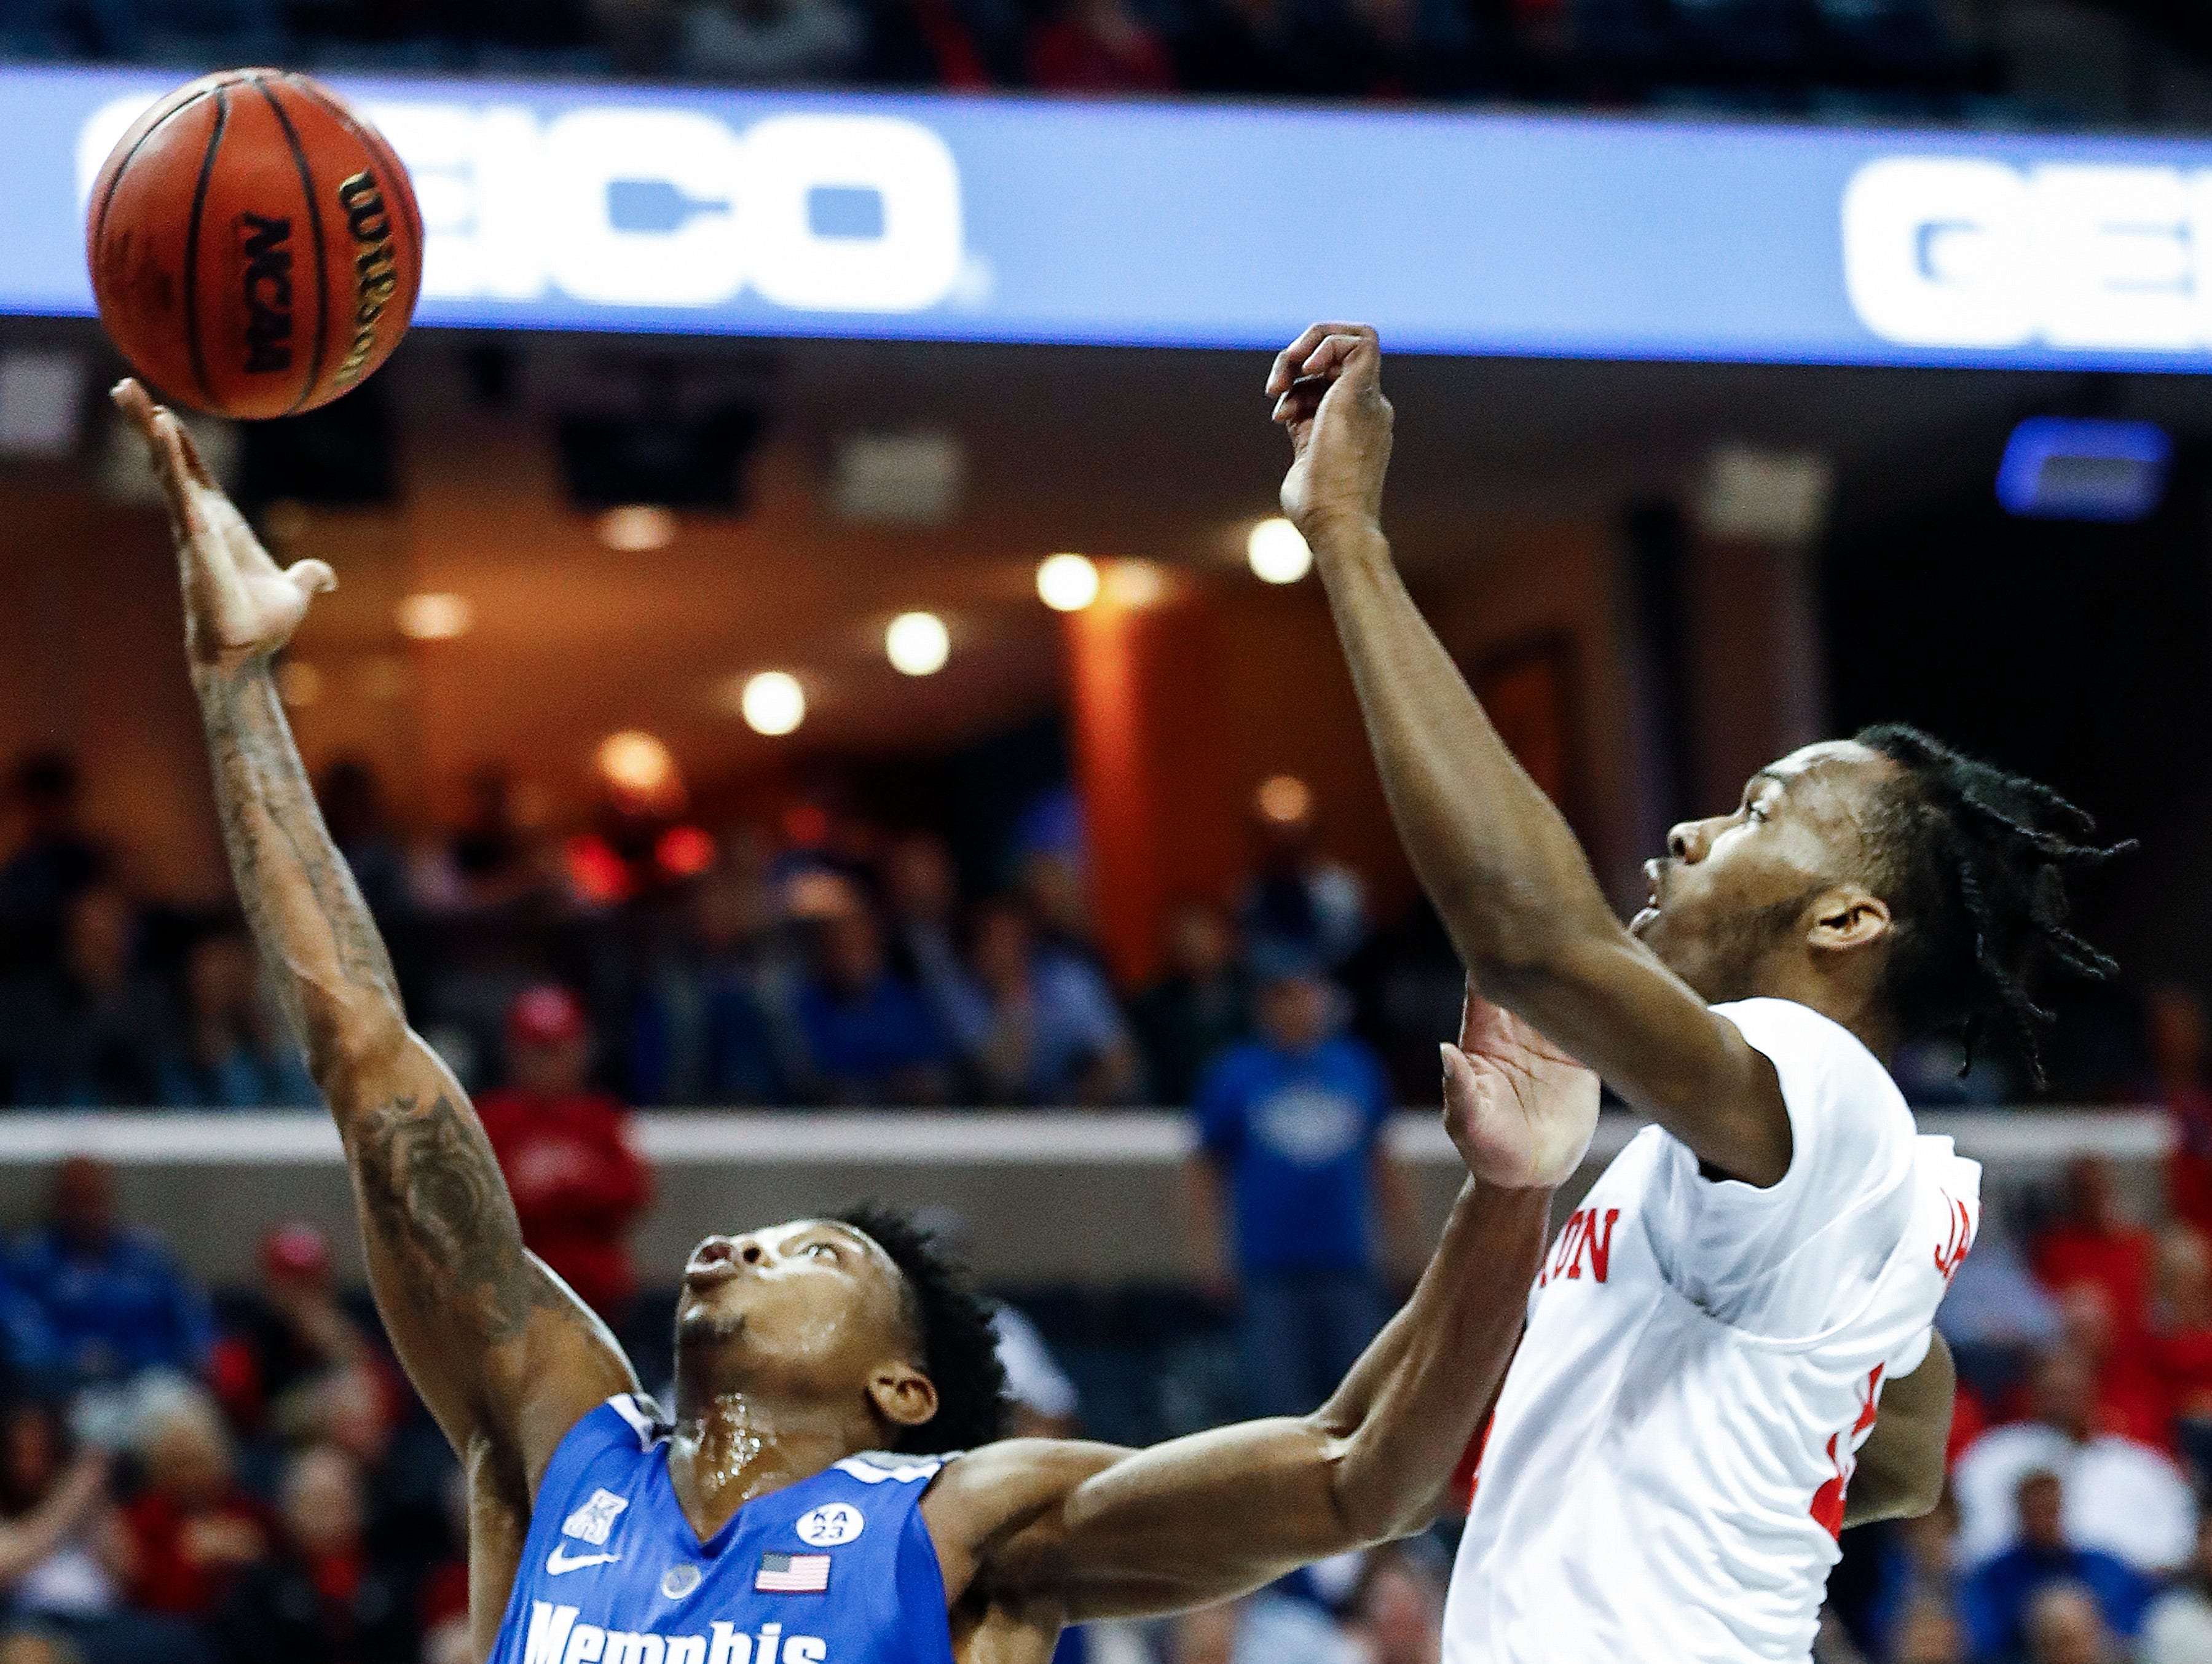 Memphis guard Kareem Brewton Jr. (left) drive for a layup in front of Houston defender DeJon Jarreau (right) during action in their semifinal round AAC Tournament game at the FedExForum, Saturday, March 16, 2019.